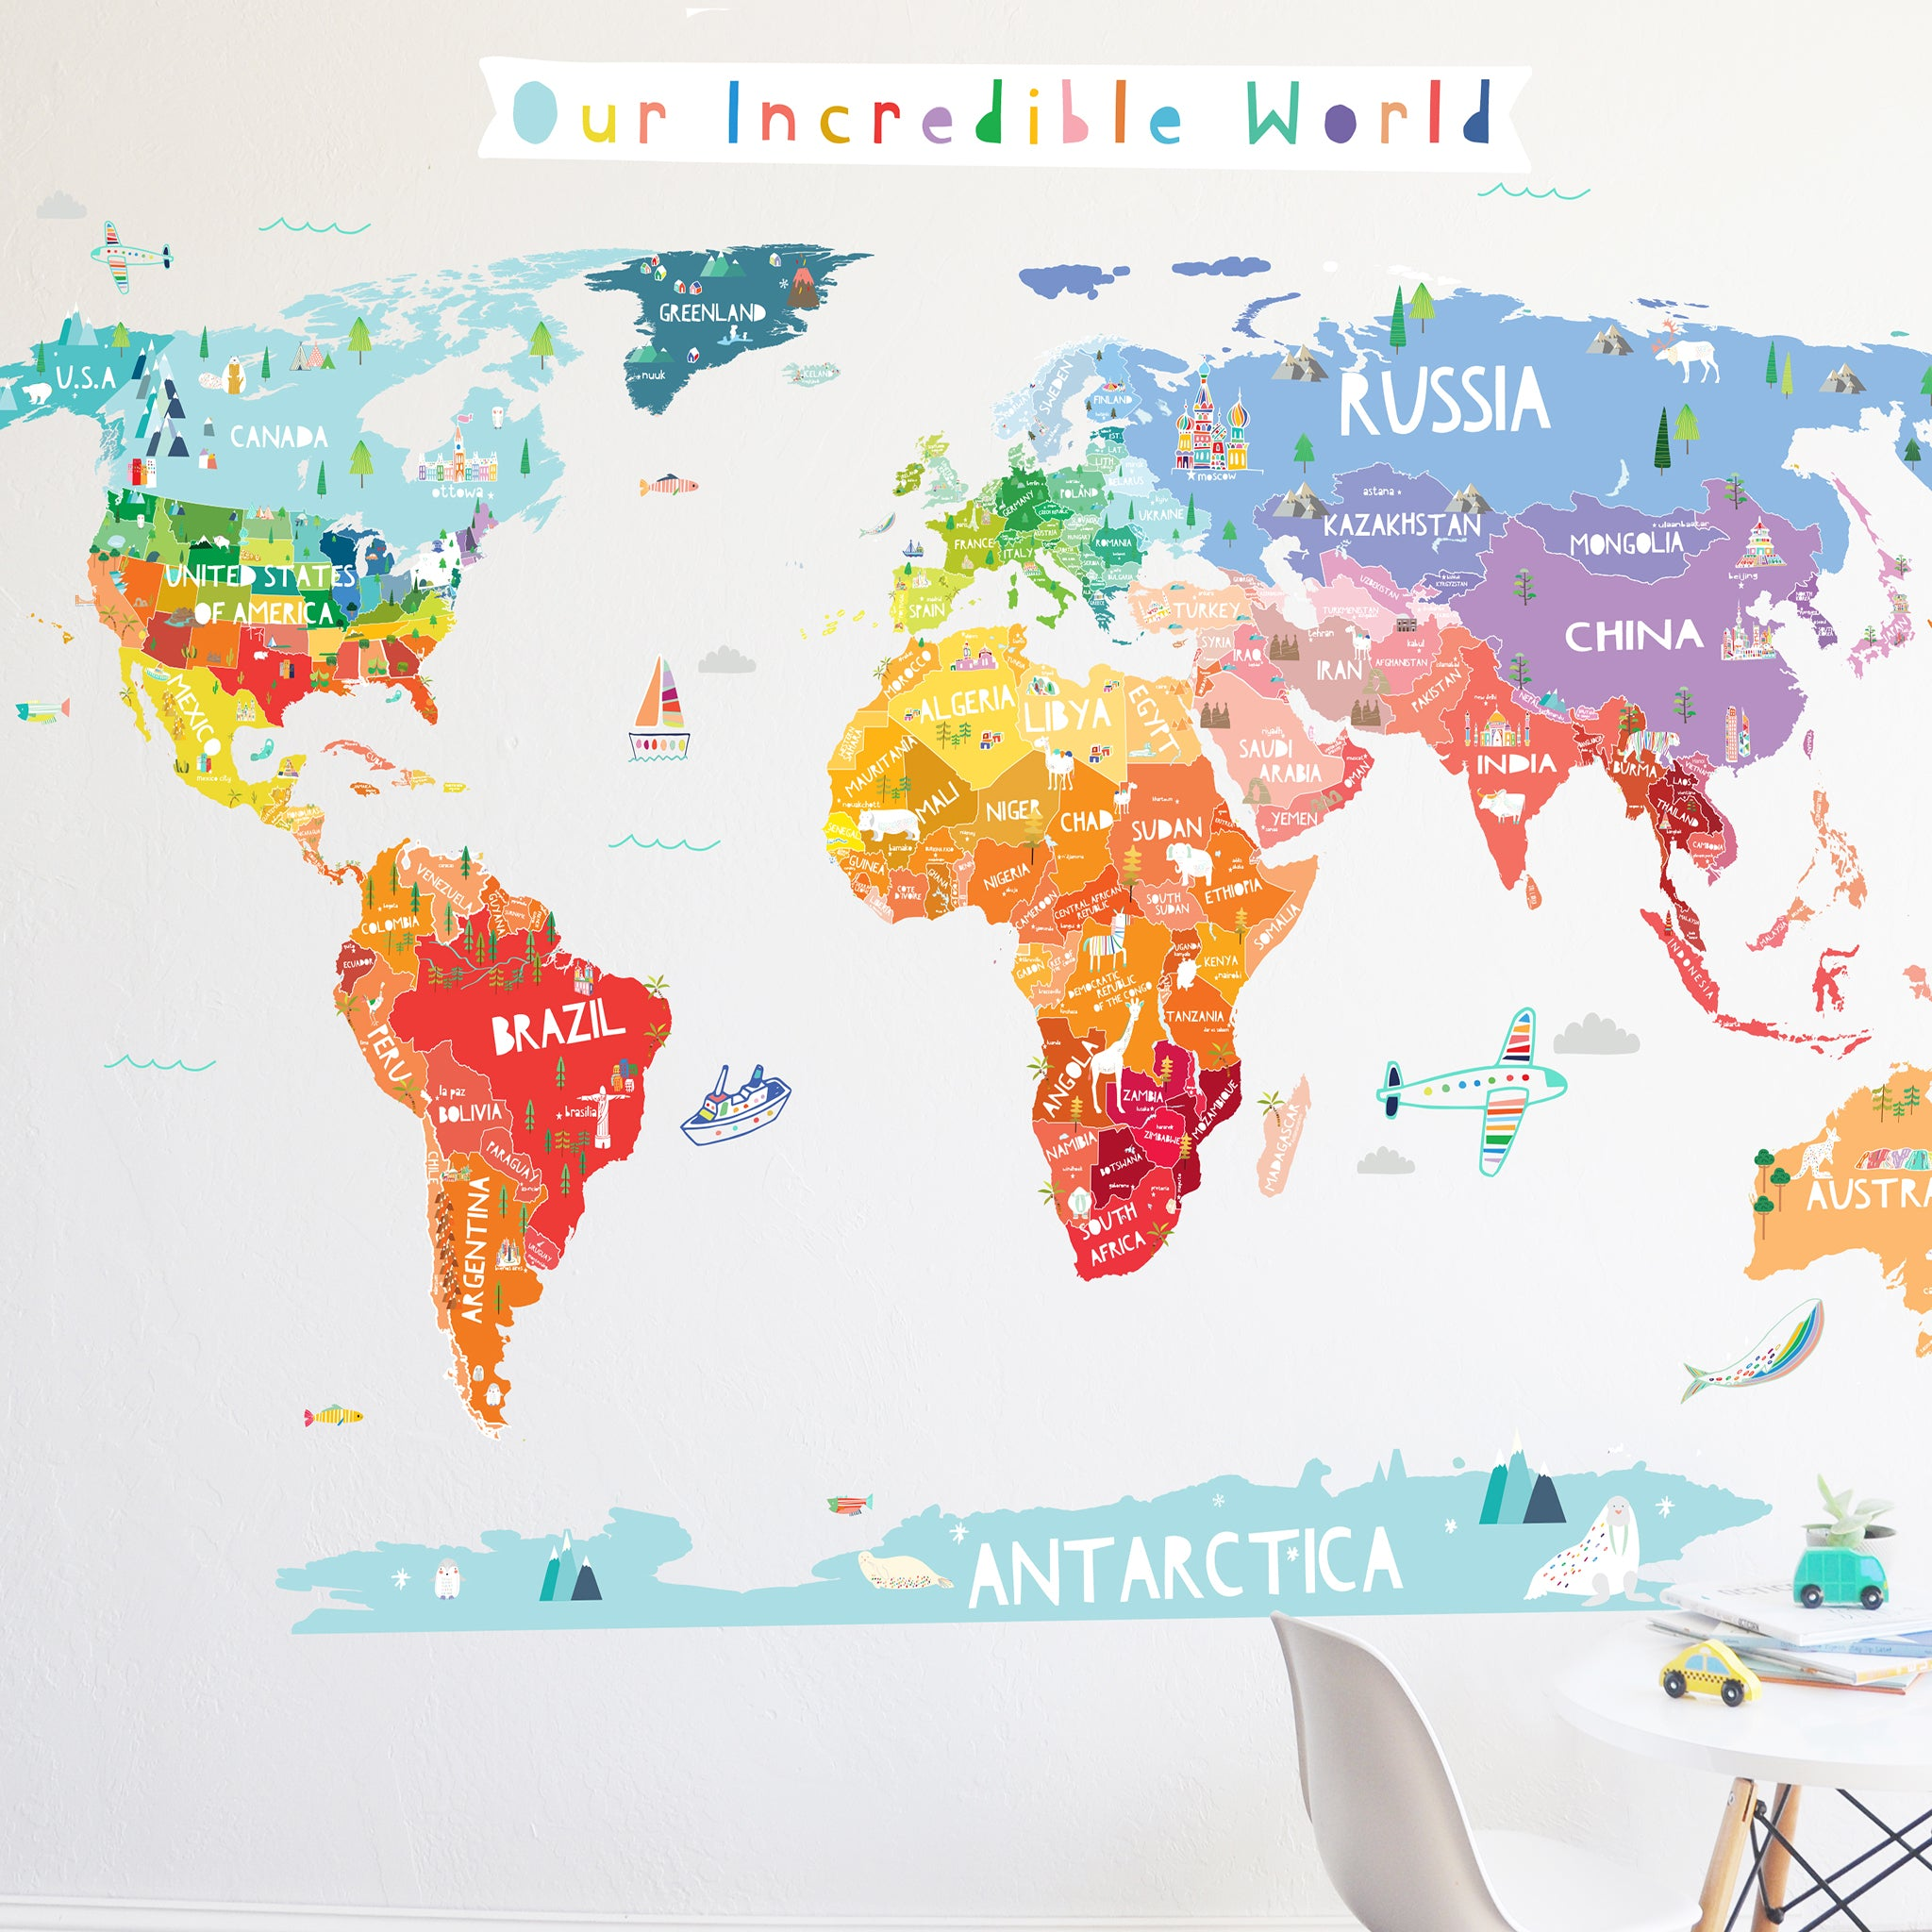 Our Incredible World Die Cut World Map Wall Decal With Personalization U2013  The Lovely Wall Company